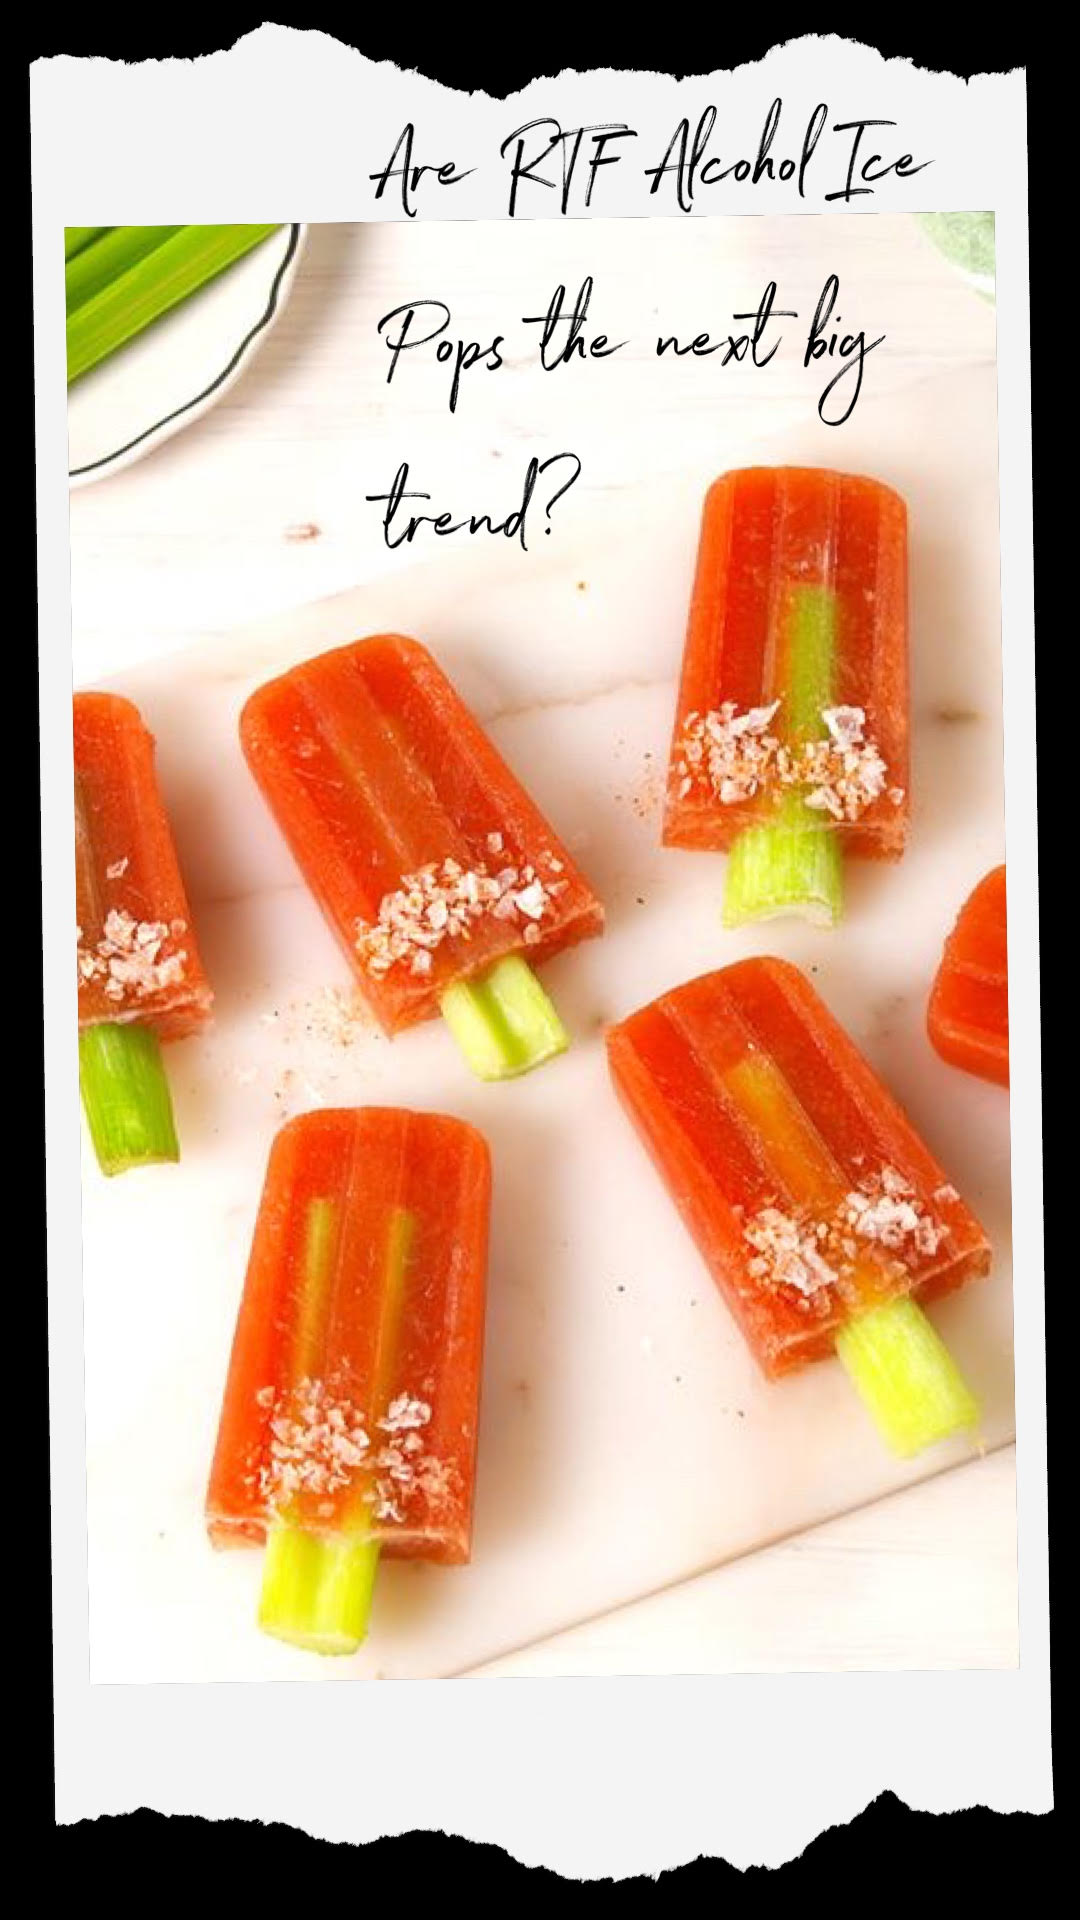 Are RTF Alcohol Ice Pops The Next Big Trend?